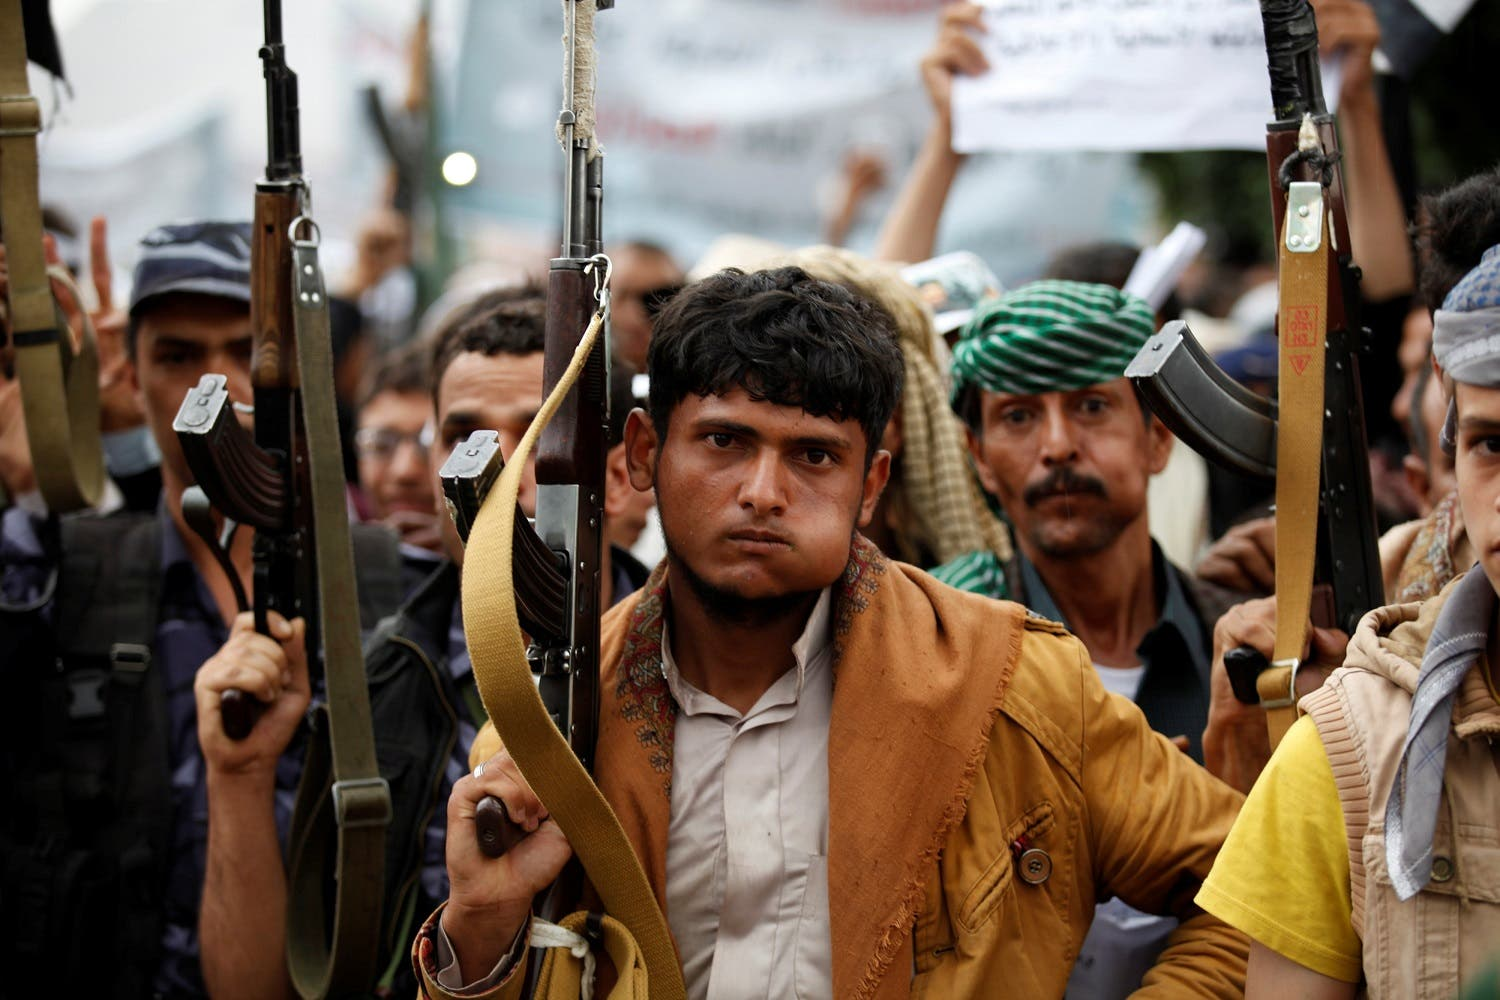 Houthis have been allegedly concealing fighters close to civilians in Taiz 'with the deliberate aim of avoiding attack'. (File photo: Reuters)